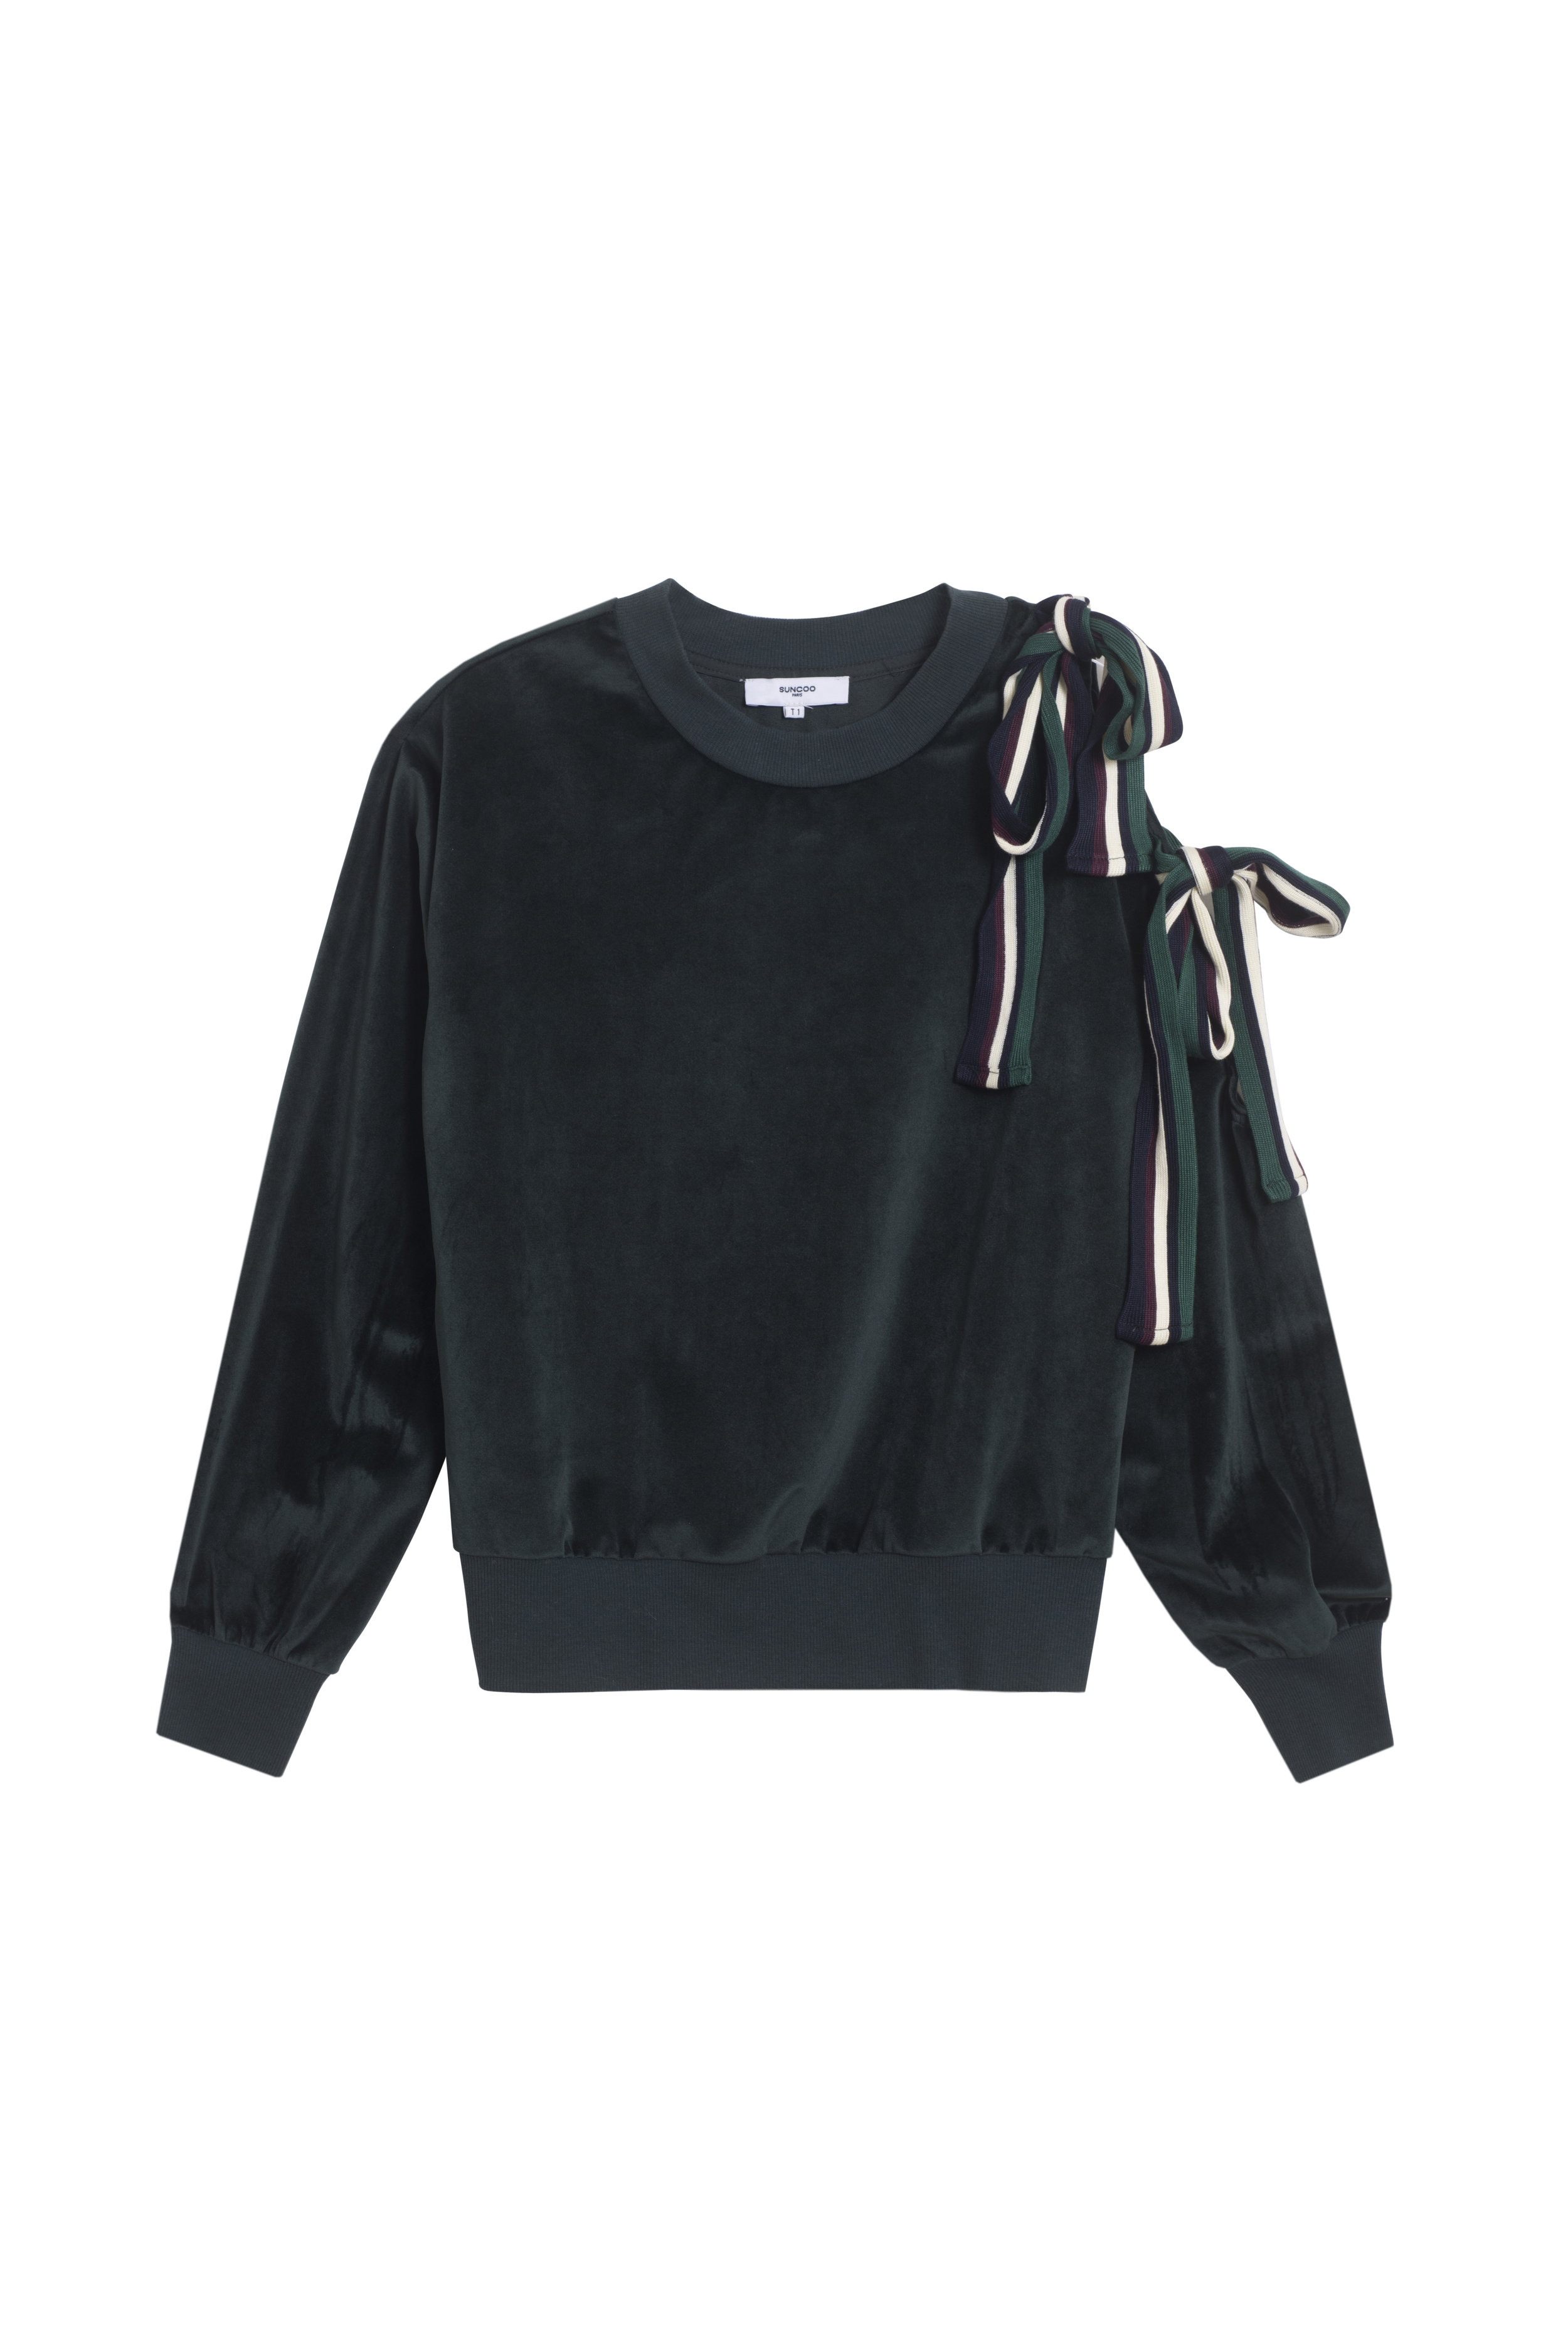 SATINE Pullover $155 - The dark green velour crew neck appears unextravagant from the right. But turn a cold-shoulder to boring fashion and you're met with voluminous ribbon ties on the cut-out shoulder. The ribbed neck, cuffs, and bottom will keep you toasty on a crisp fall day.